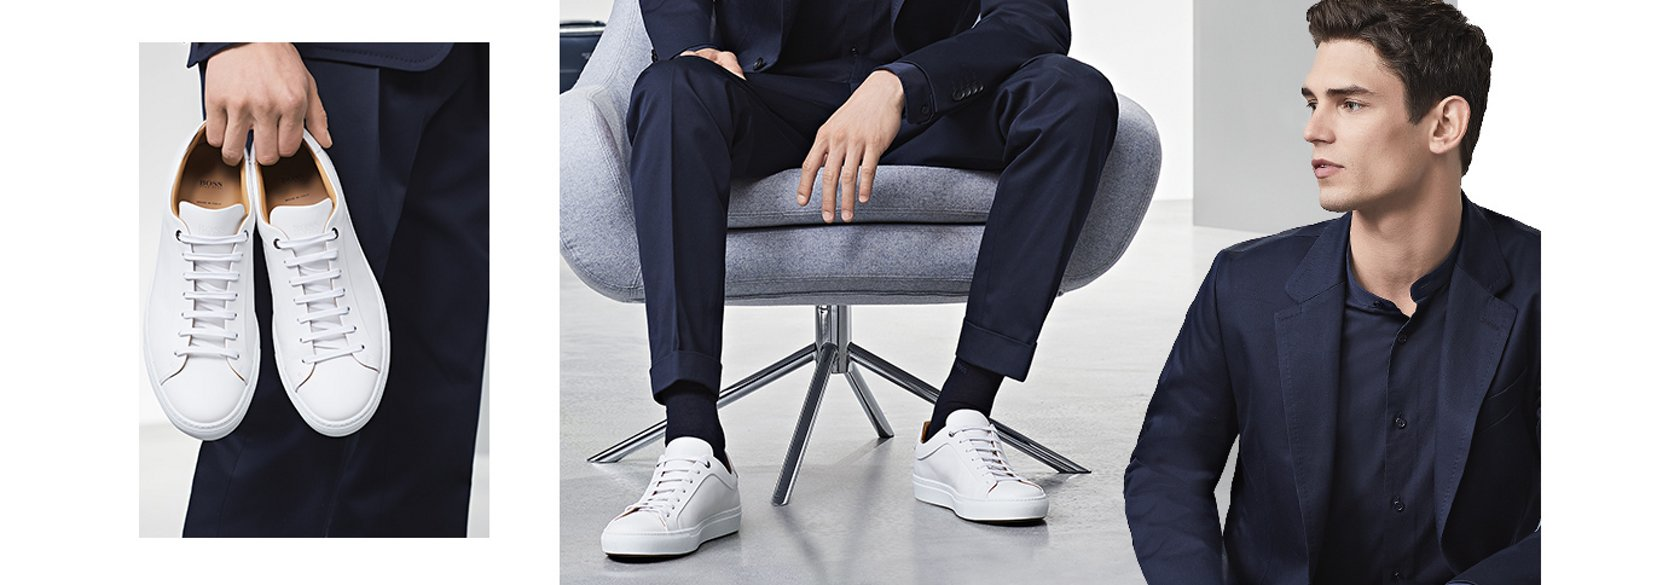 2b4c3693e179da Navy smart casual suit looks with white sneakers collage by BOSS ...